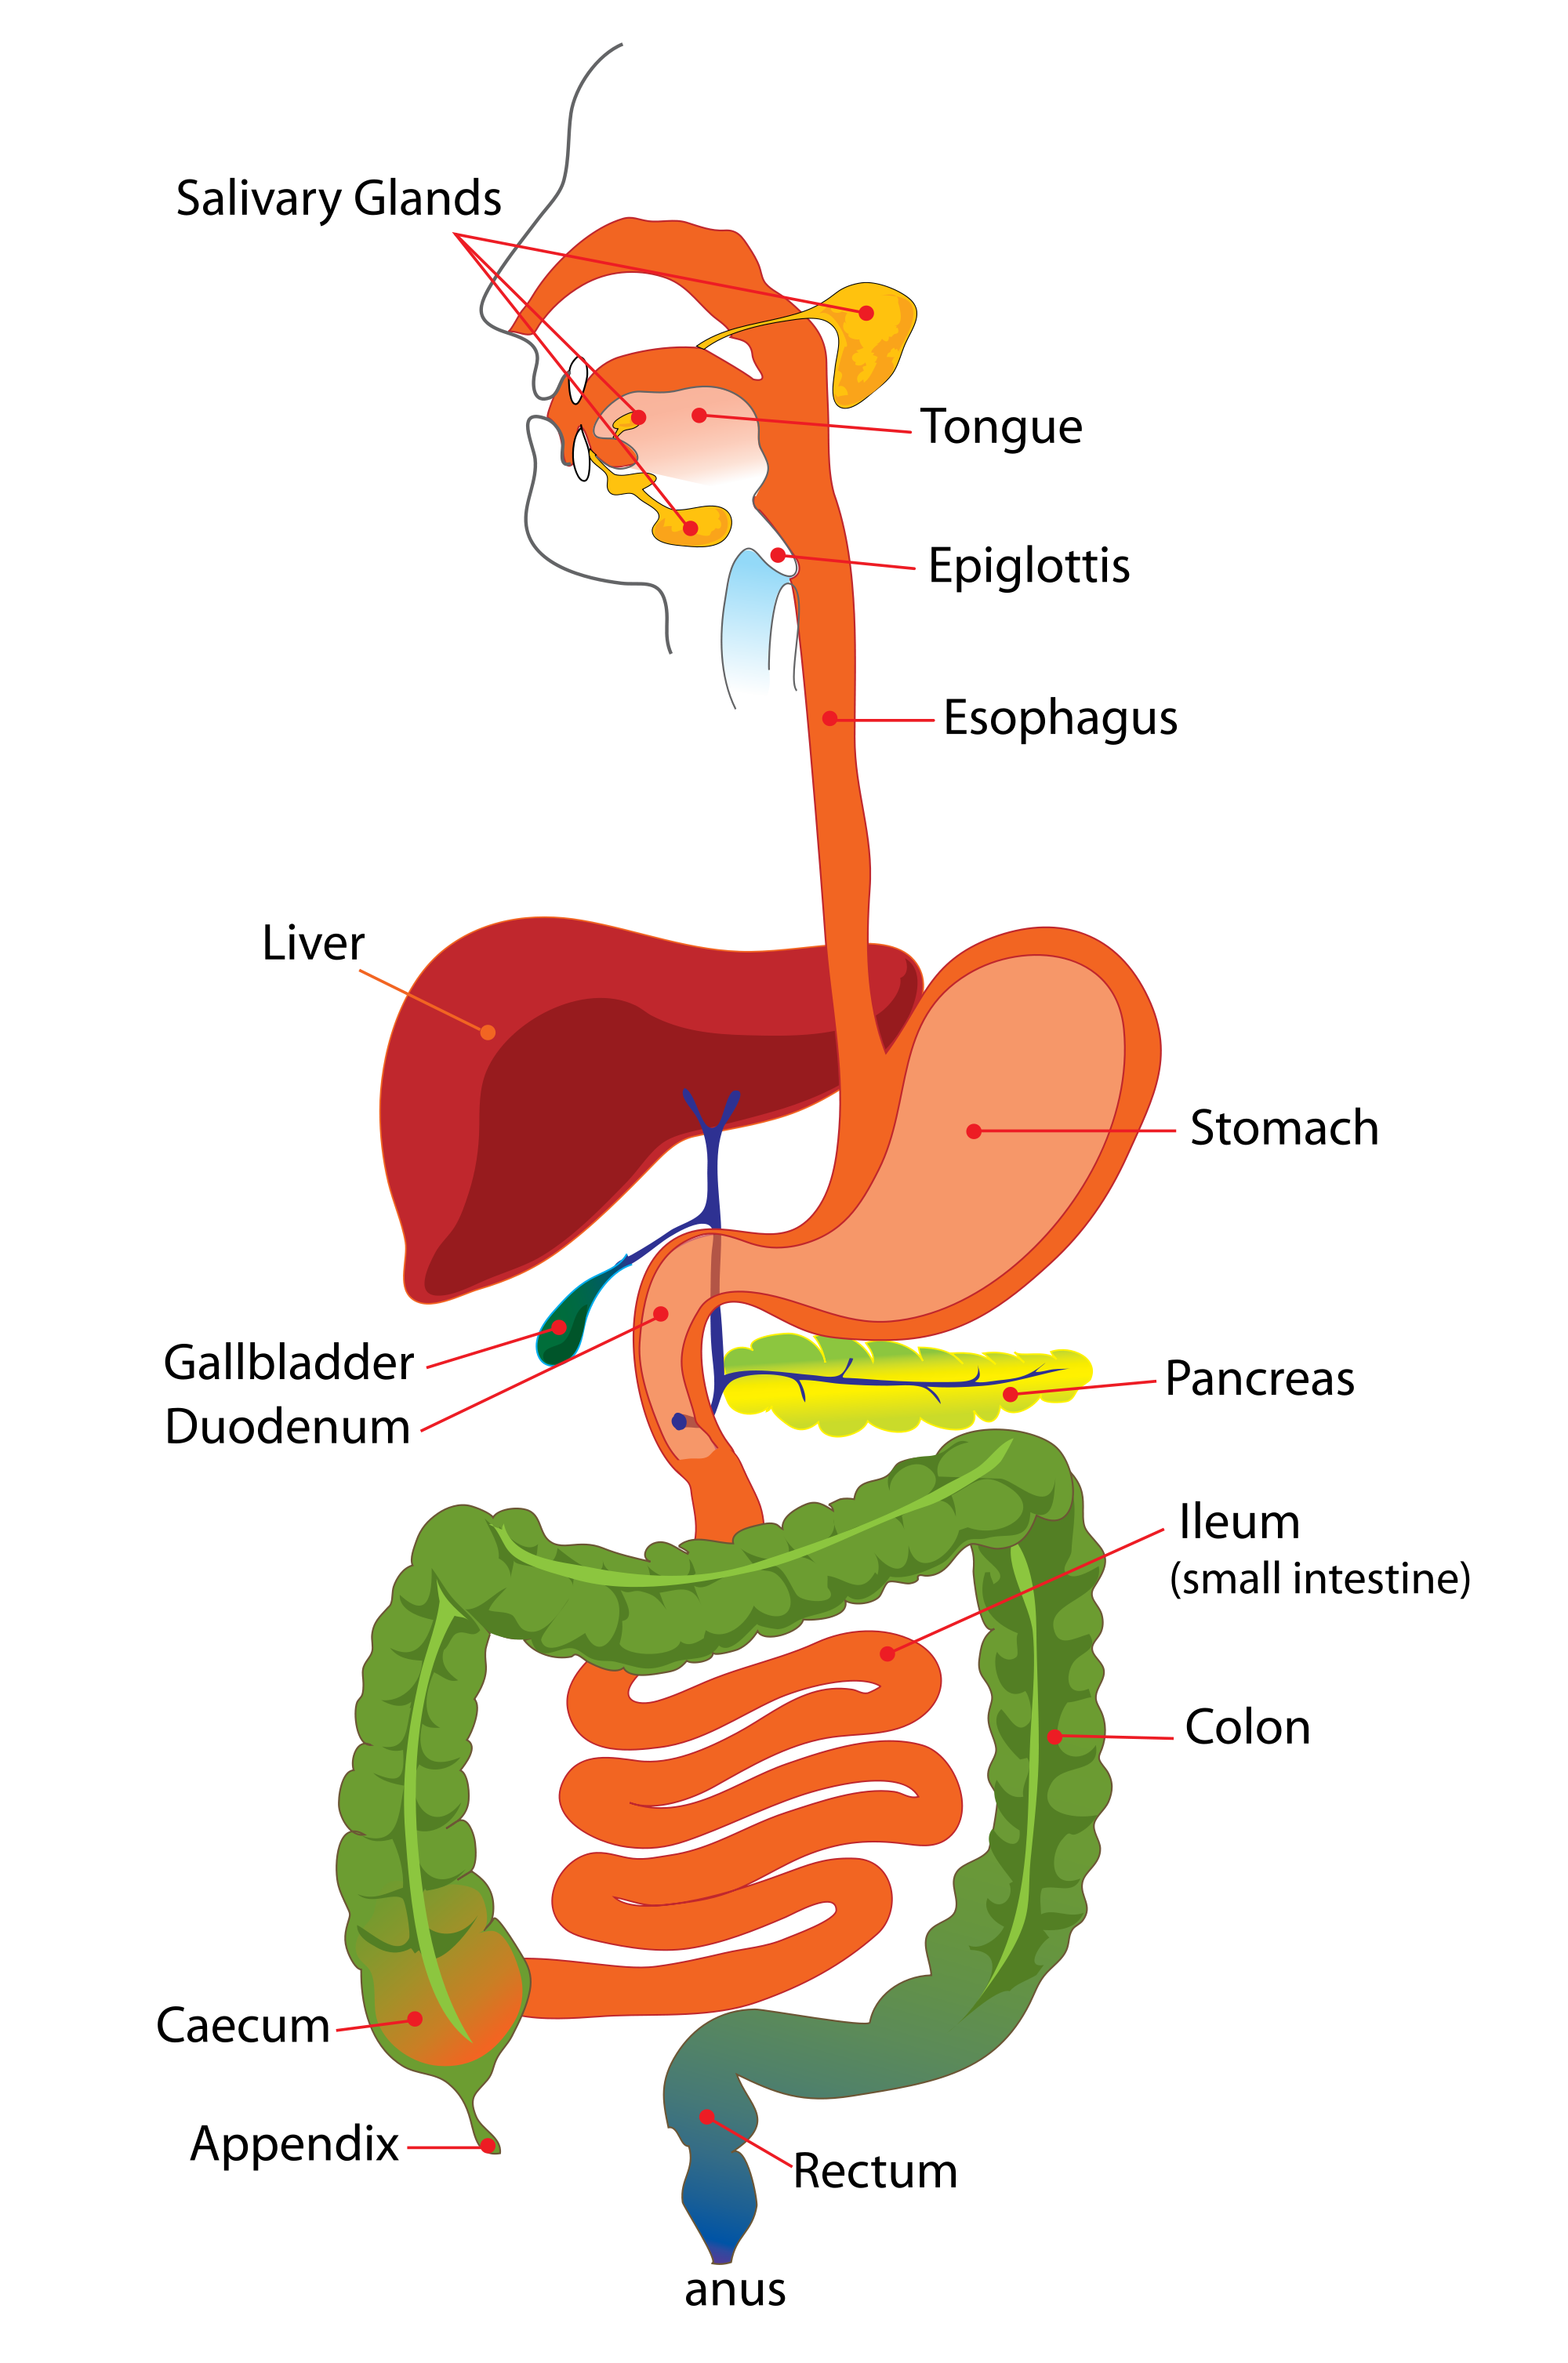 Digestive System Diagram For Kids Digestion Facts Infobarrel